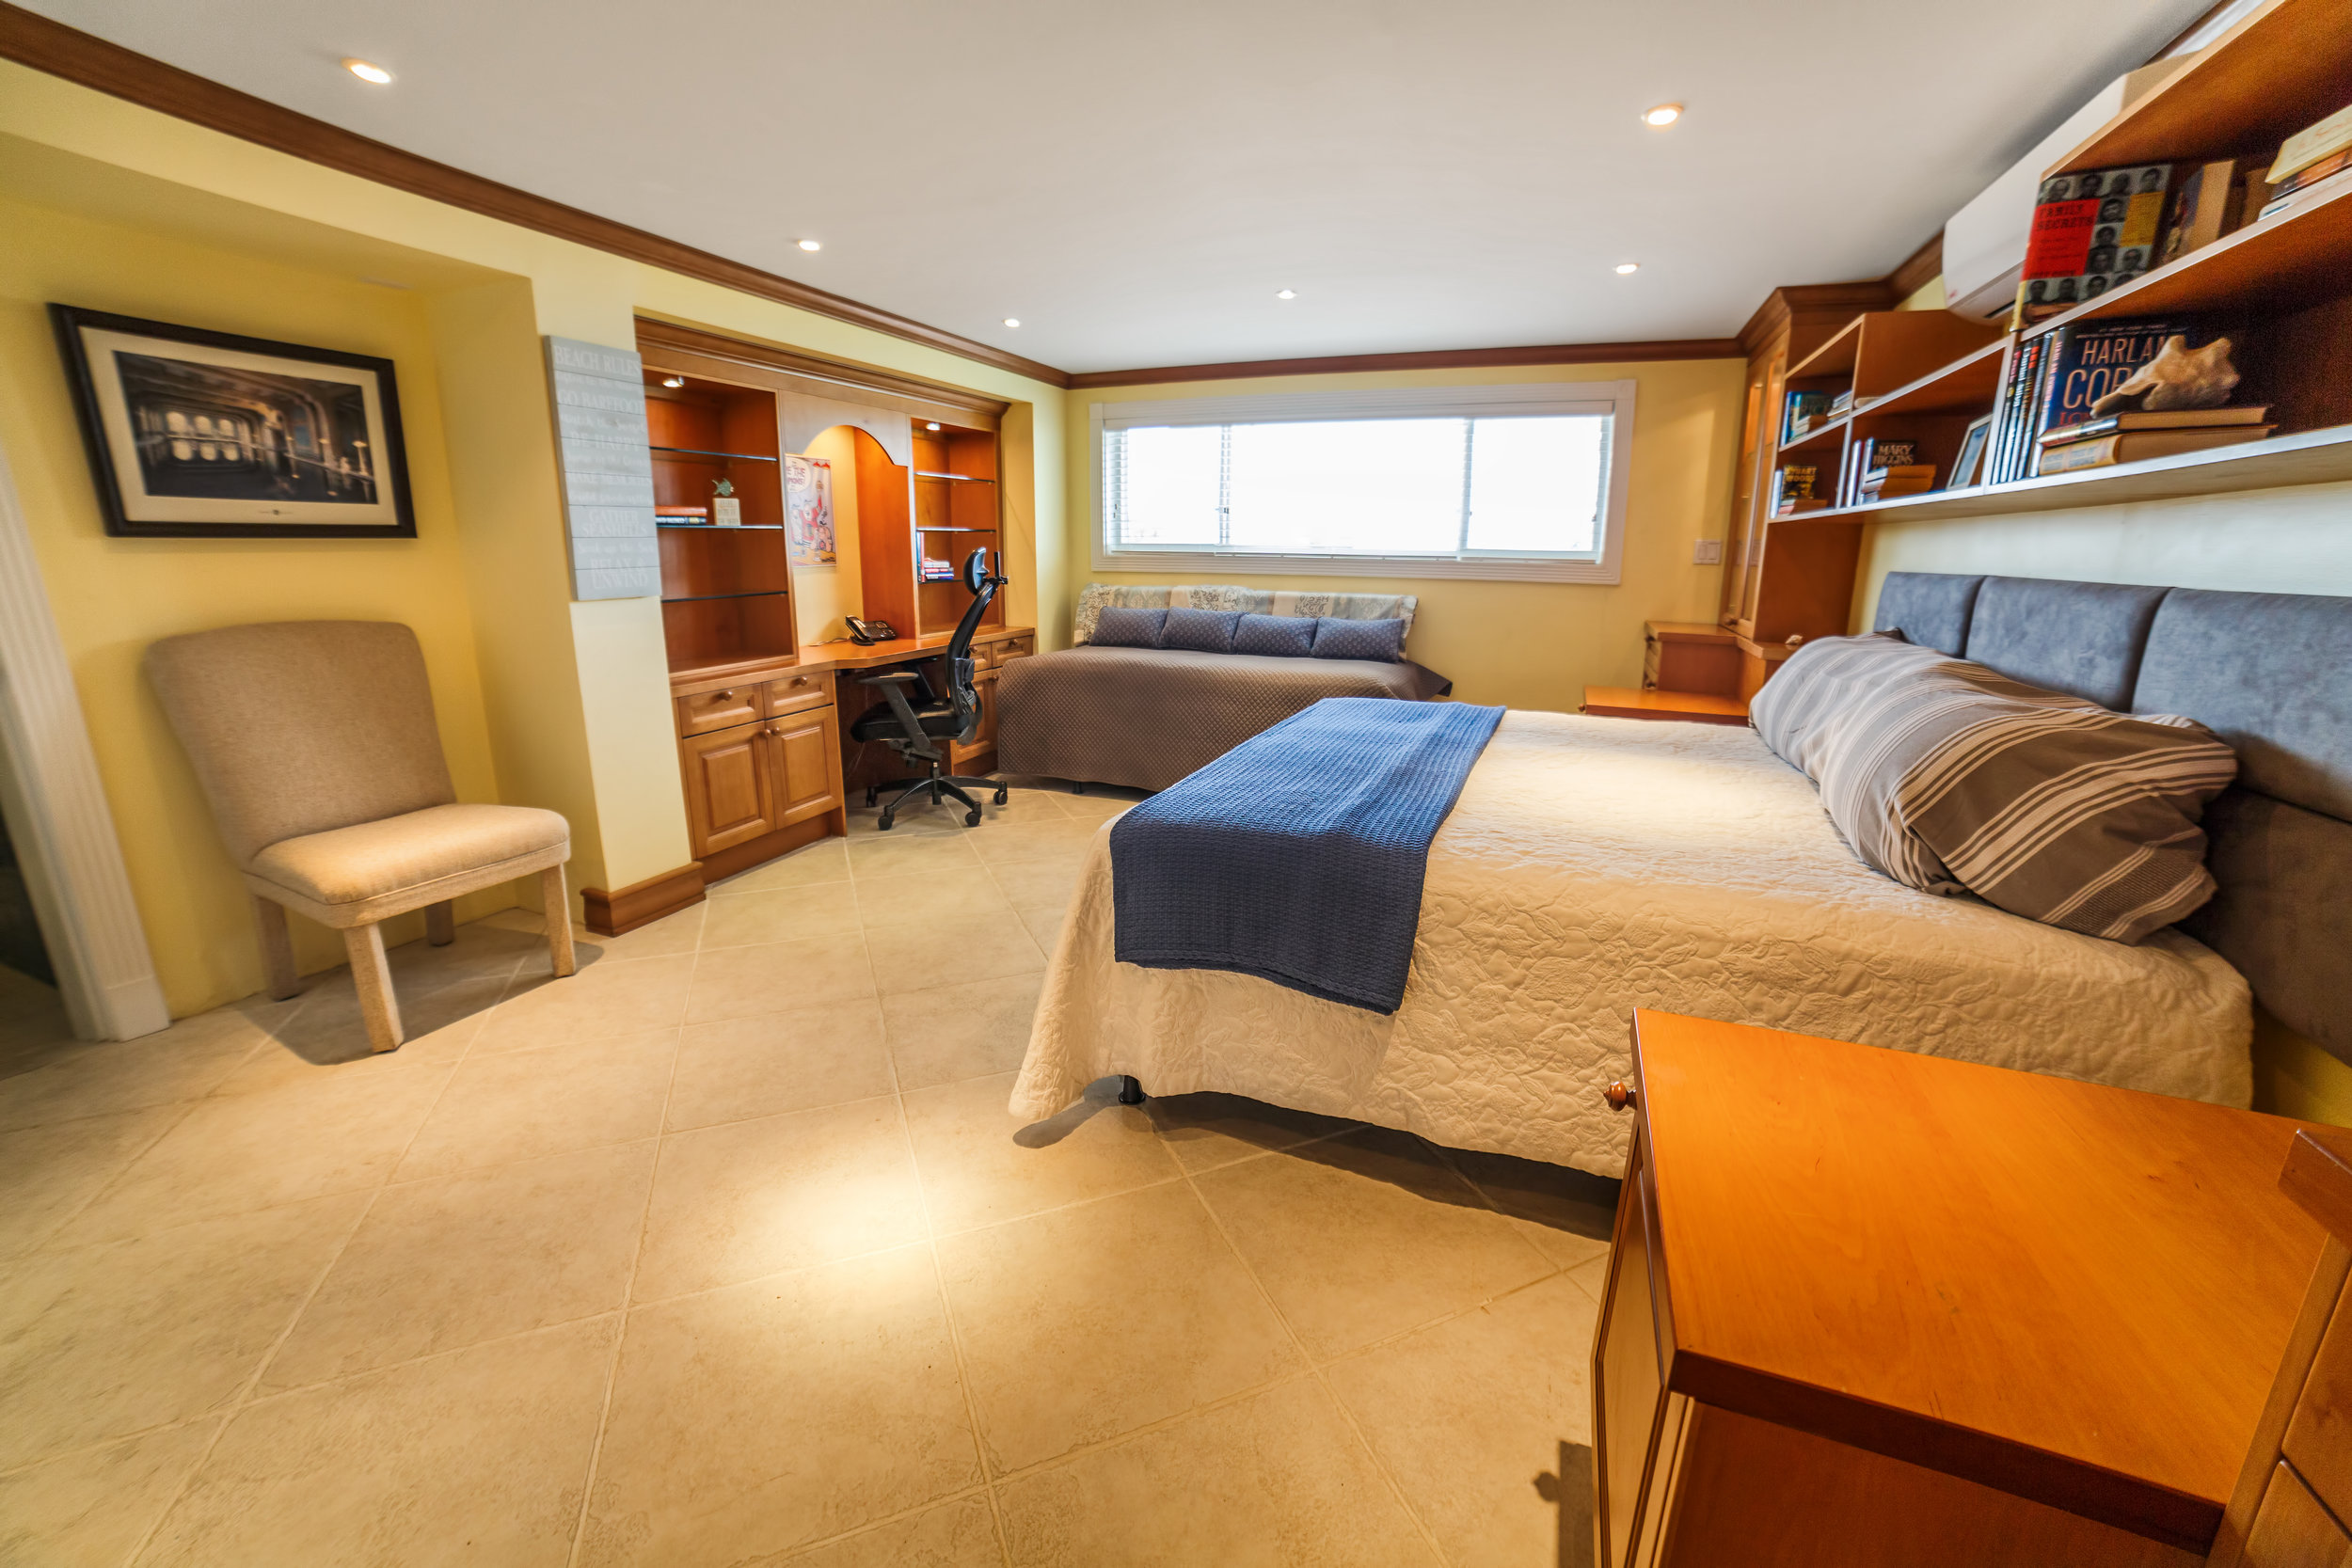 This bedroom features a king bed plus a day bed that can convert into three twins for extra people